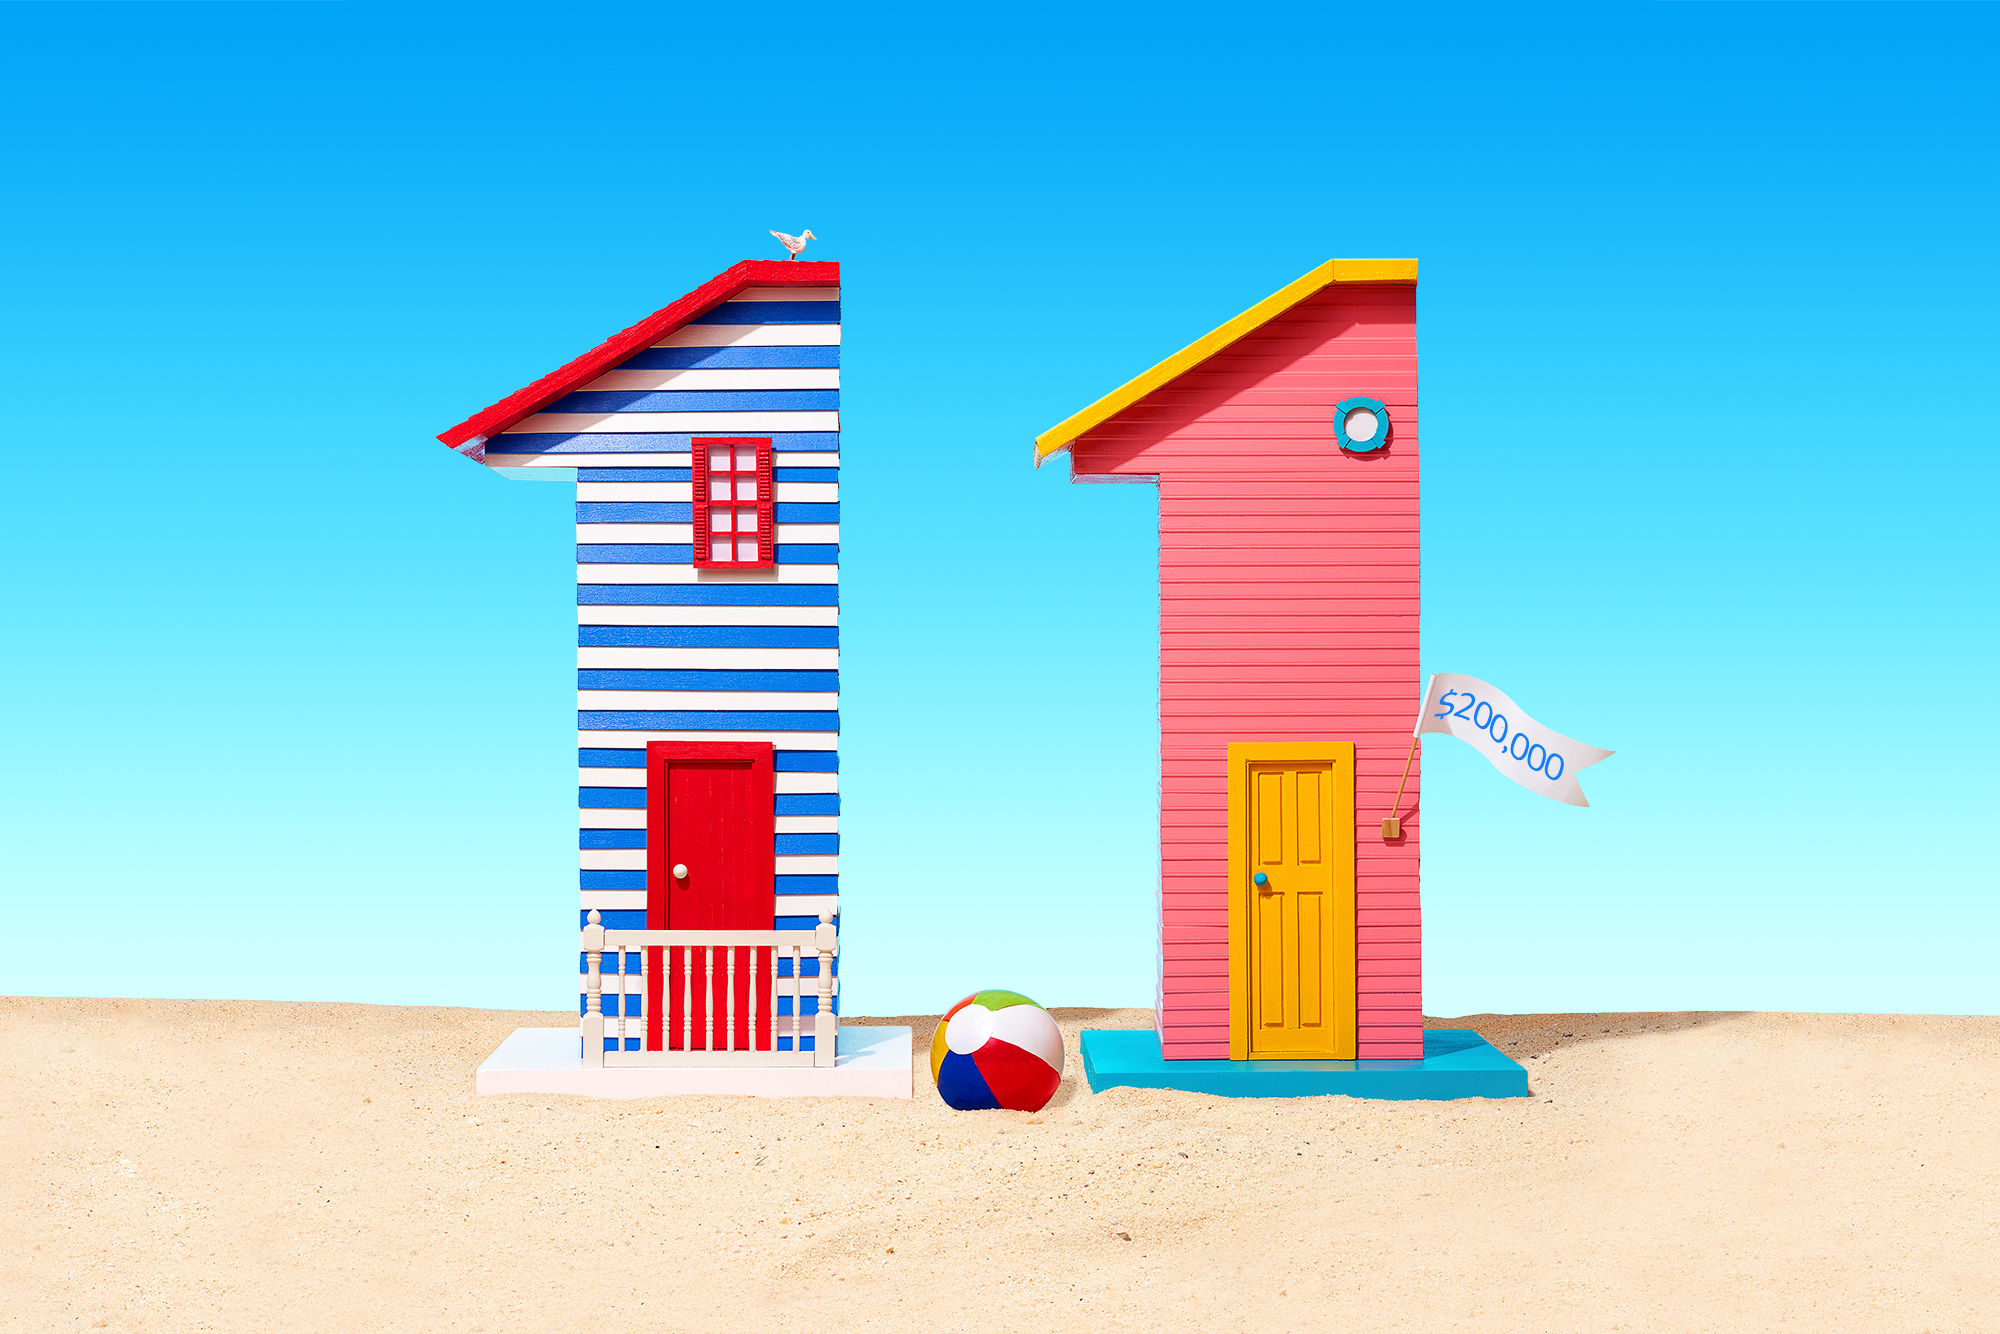 two beach house models